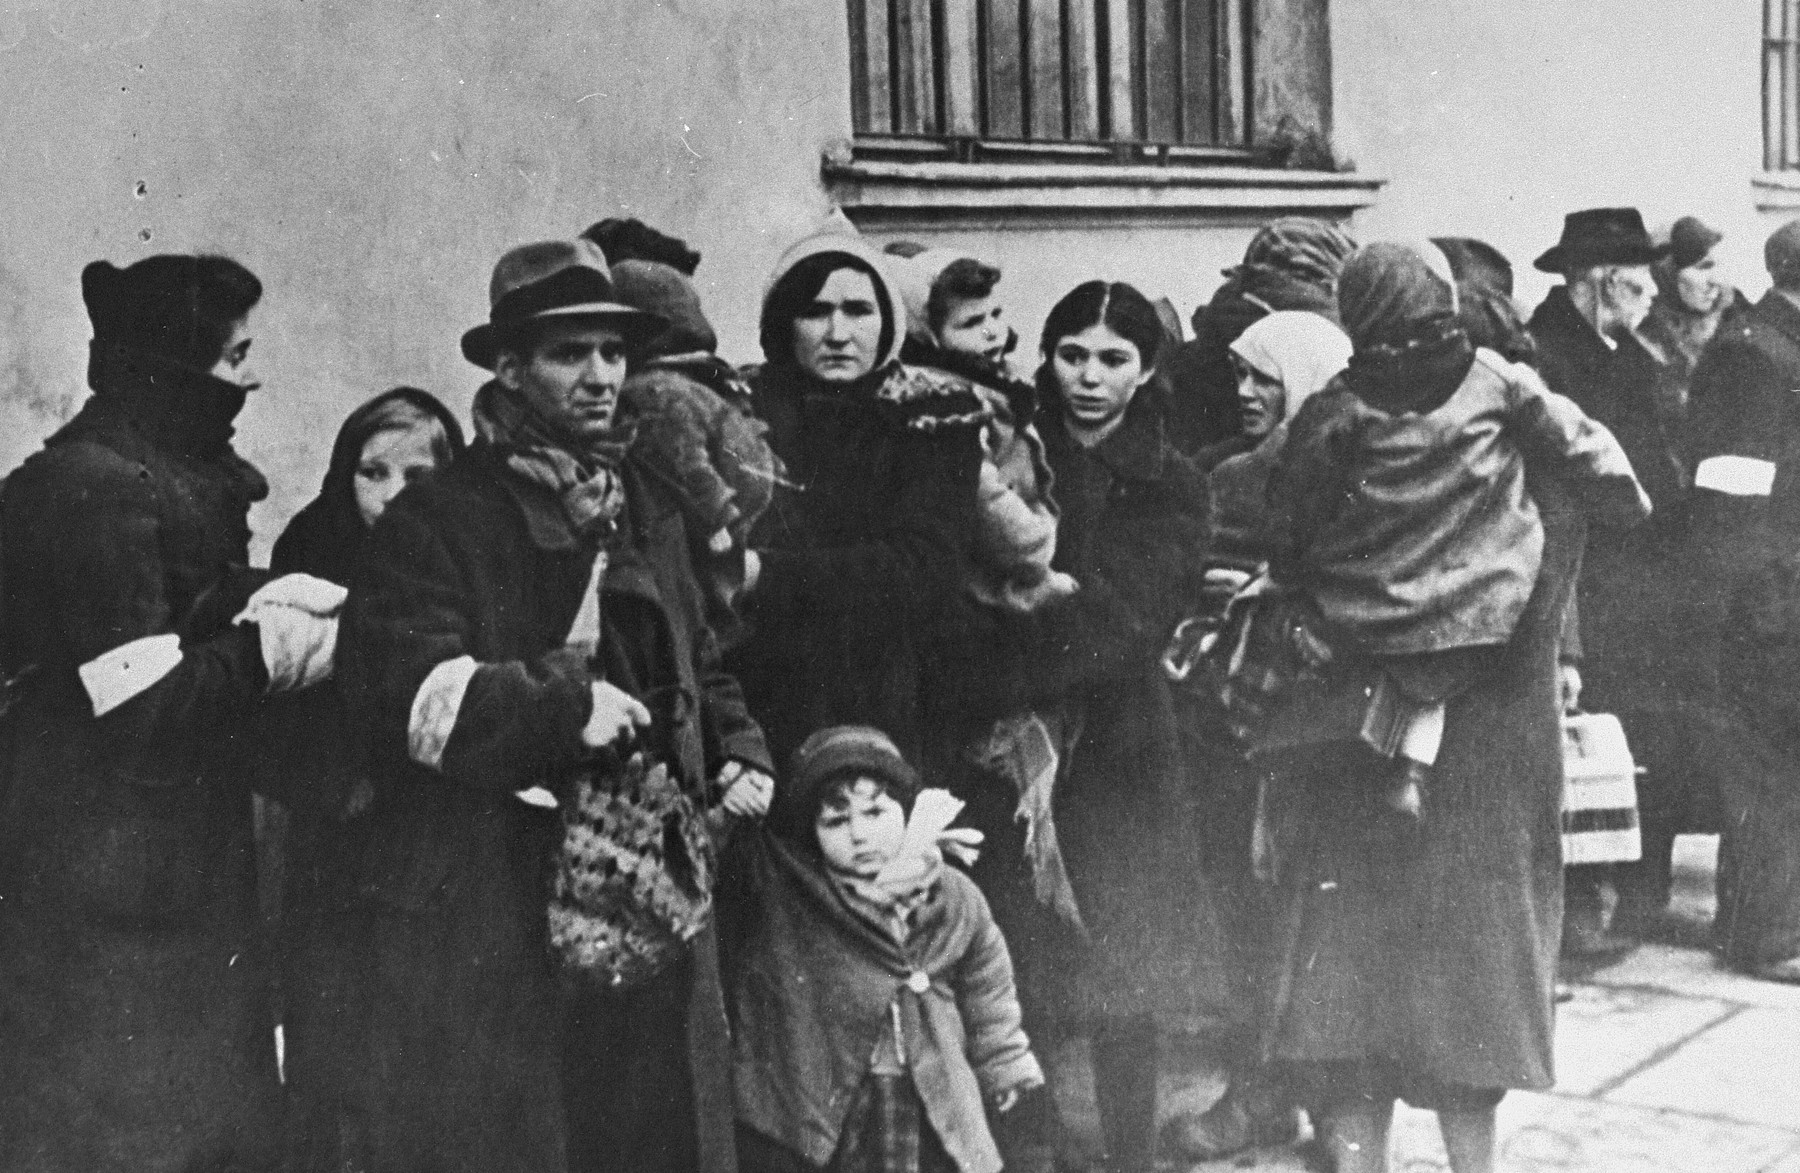 Jews from the Krakow ghetto are assembled for deportation.